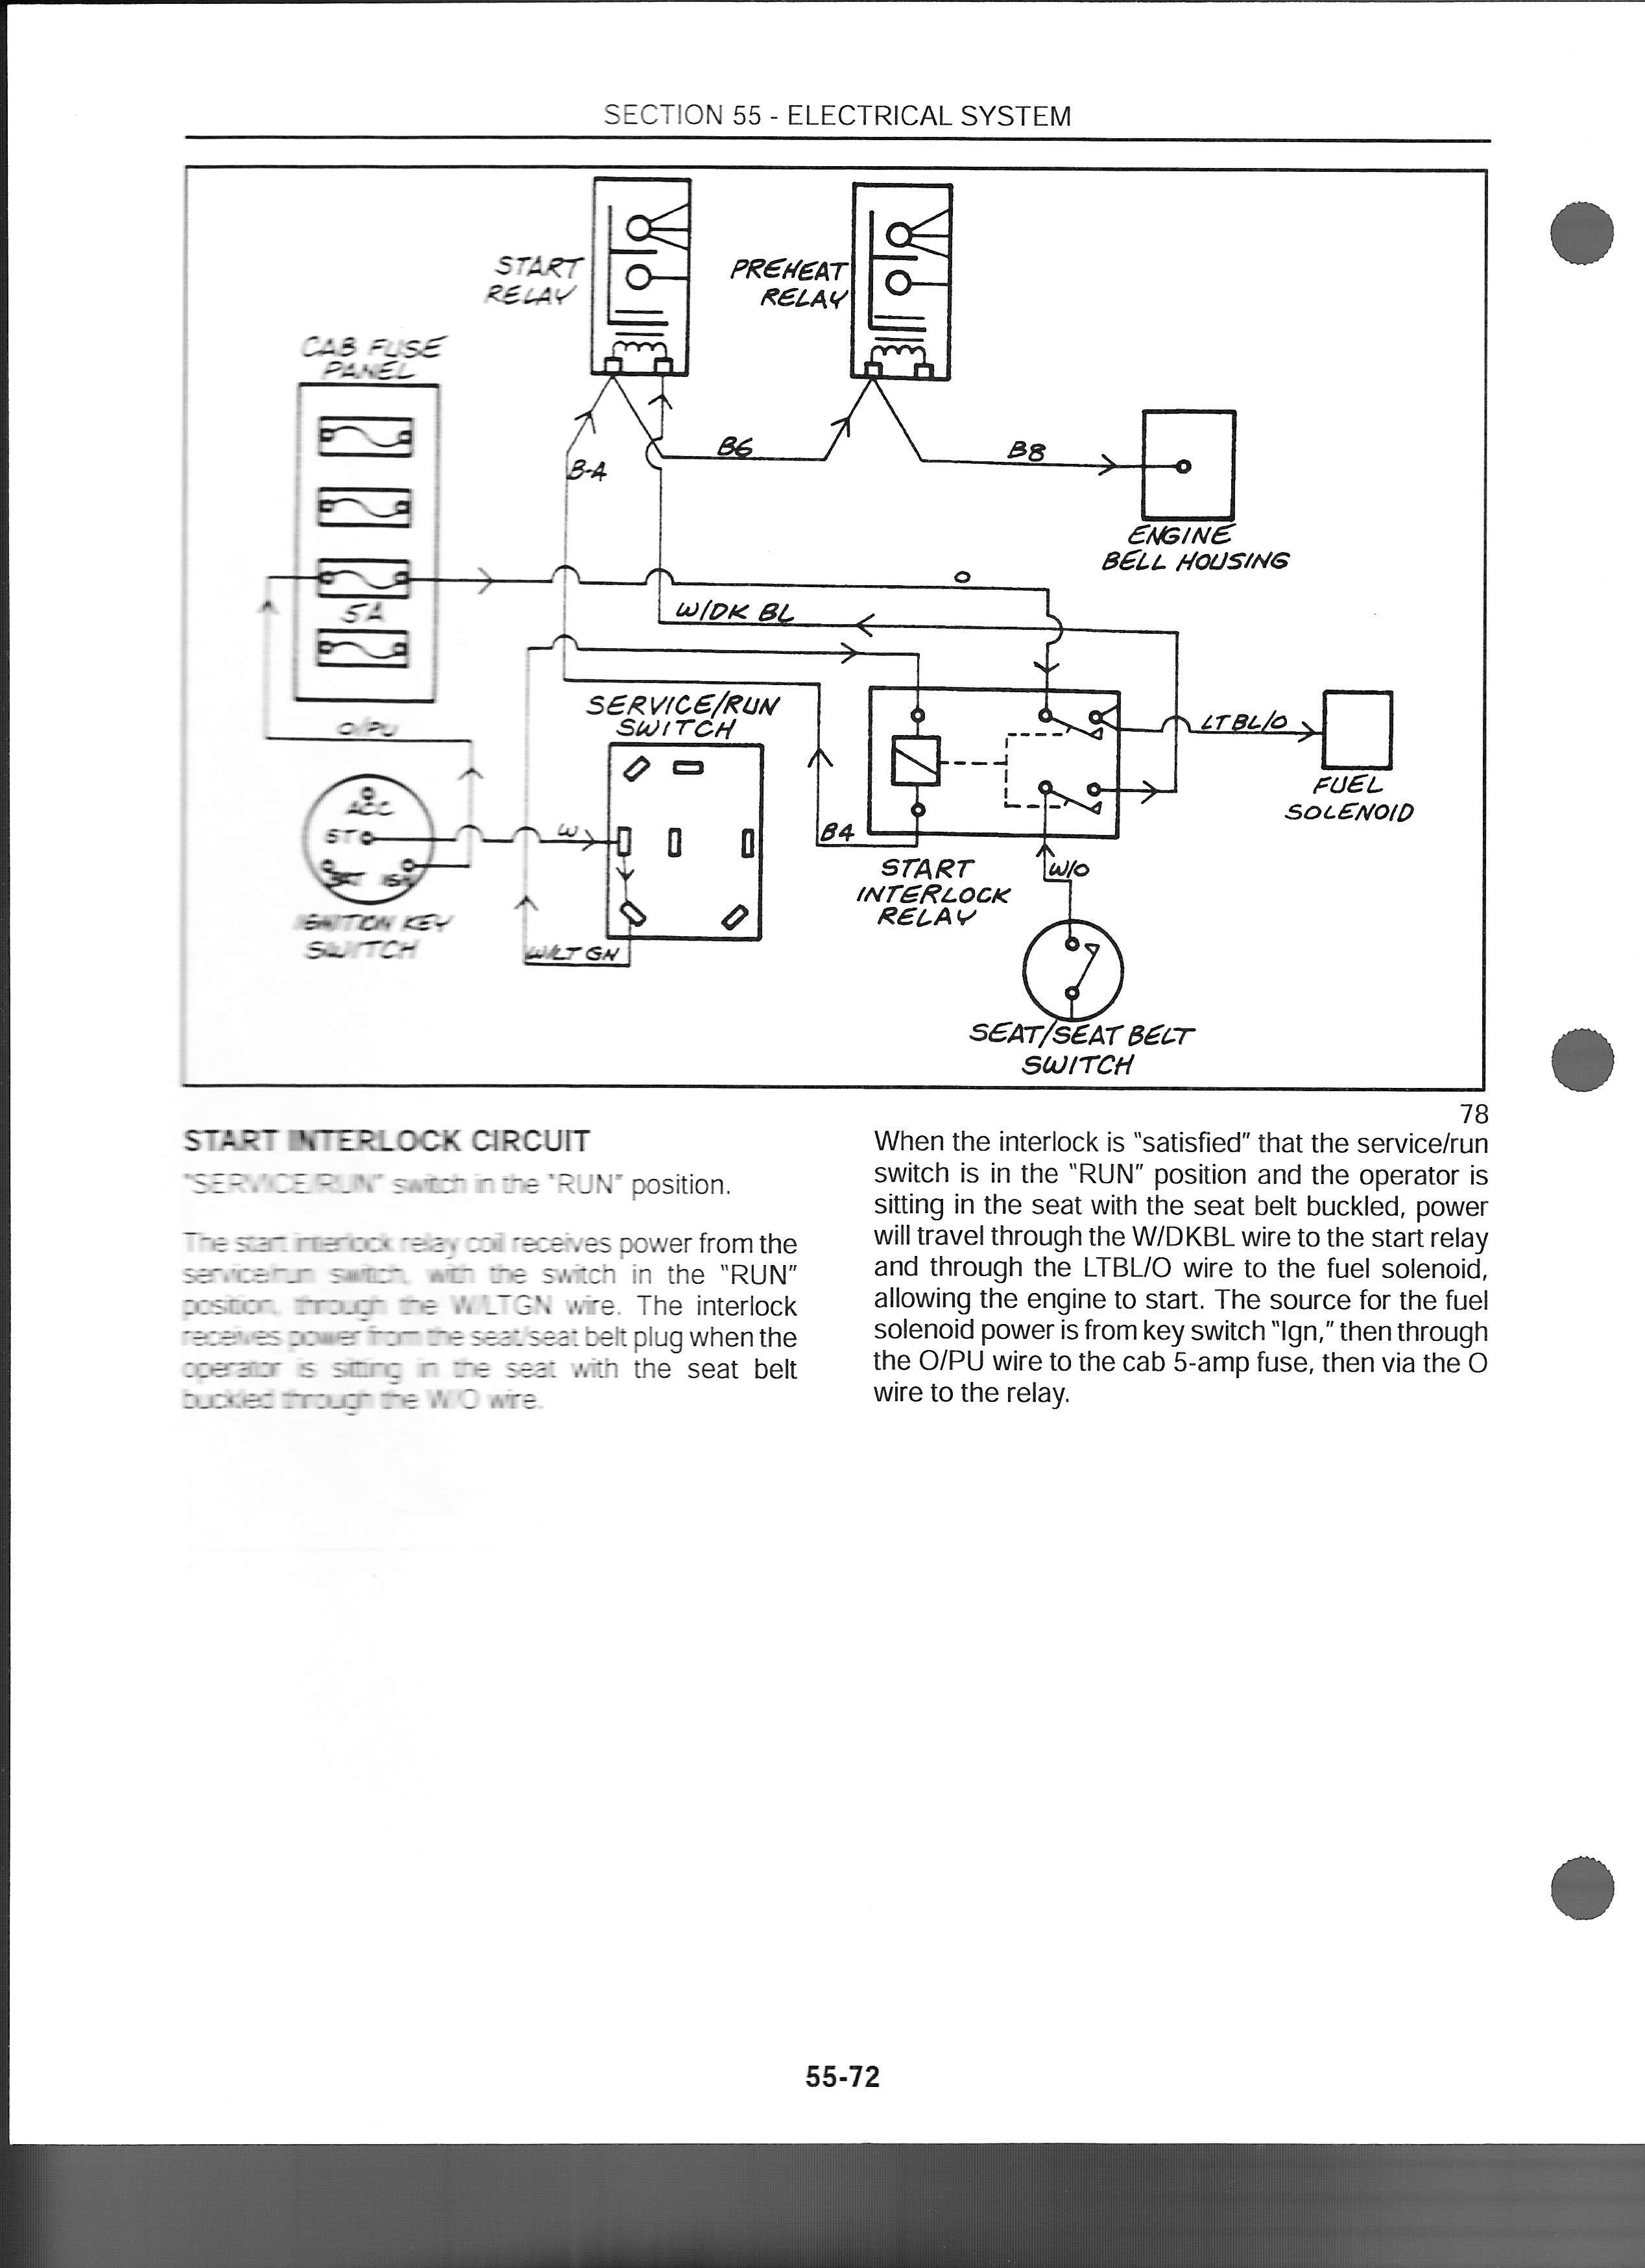 new holland ls180 wiring diagram new tractor engine and wiring diagram New Holland LS190 Parts Diagram LS180 New Holland Parts Diagram